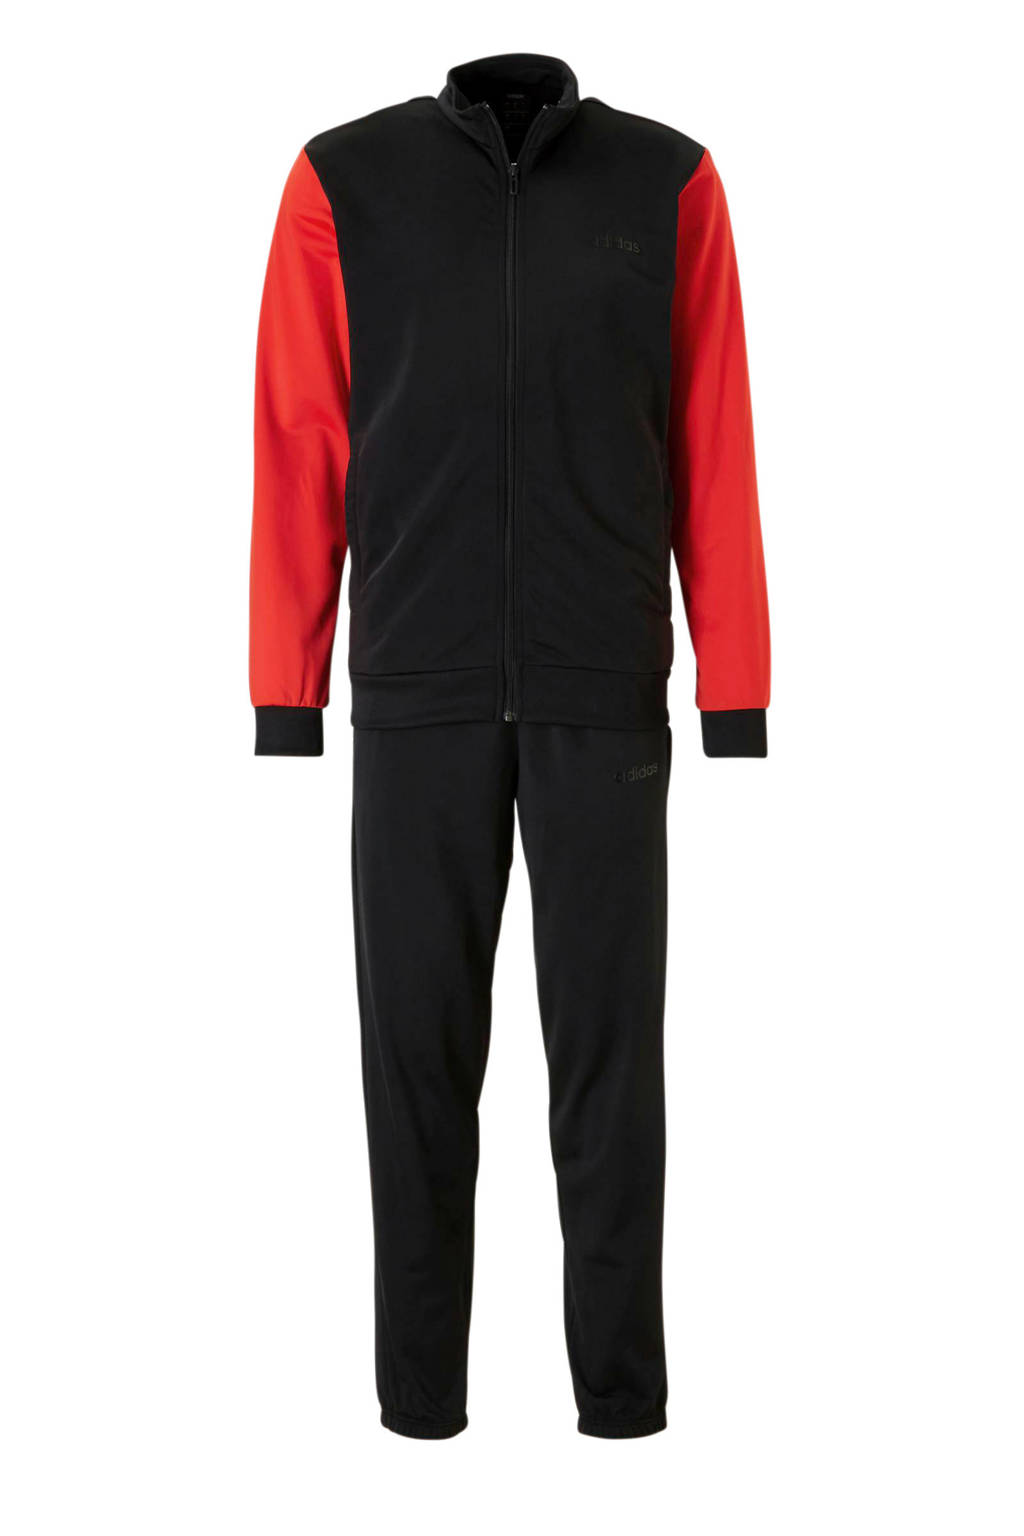 adidas performance   trainingspak zwart/rood, Zwart/rood